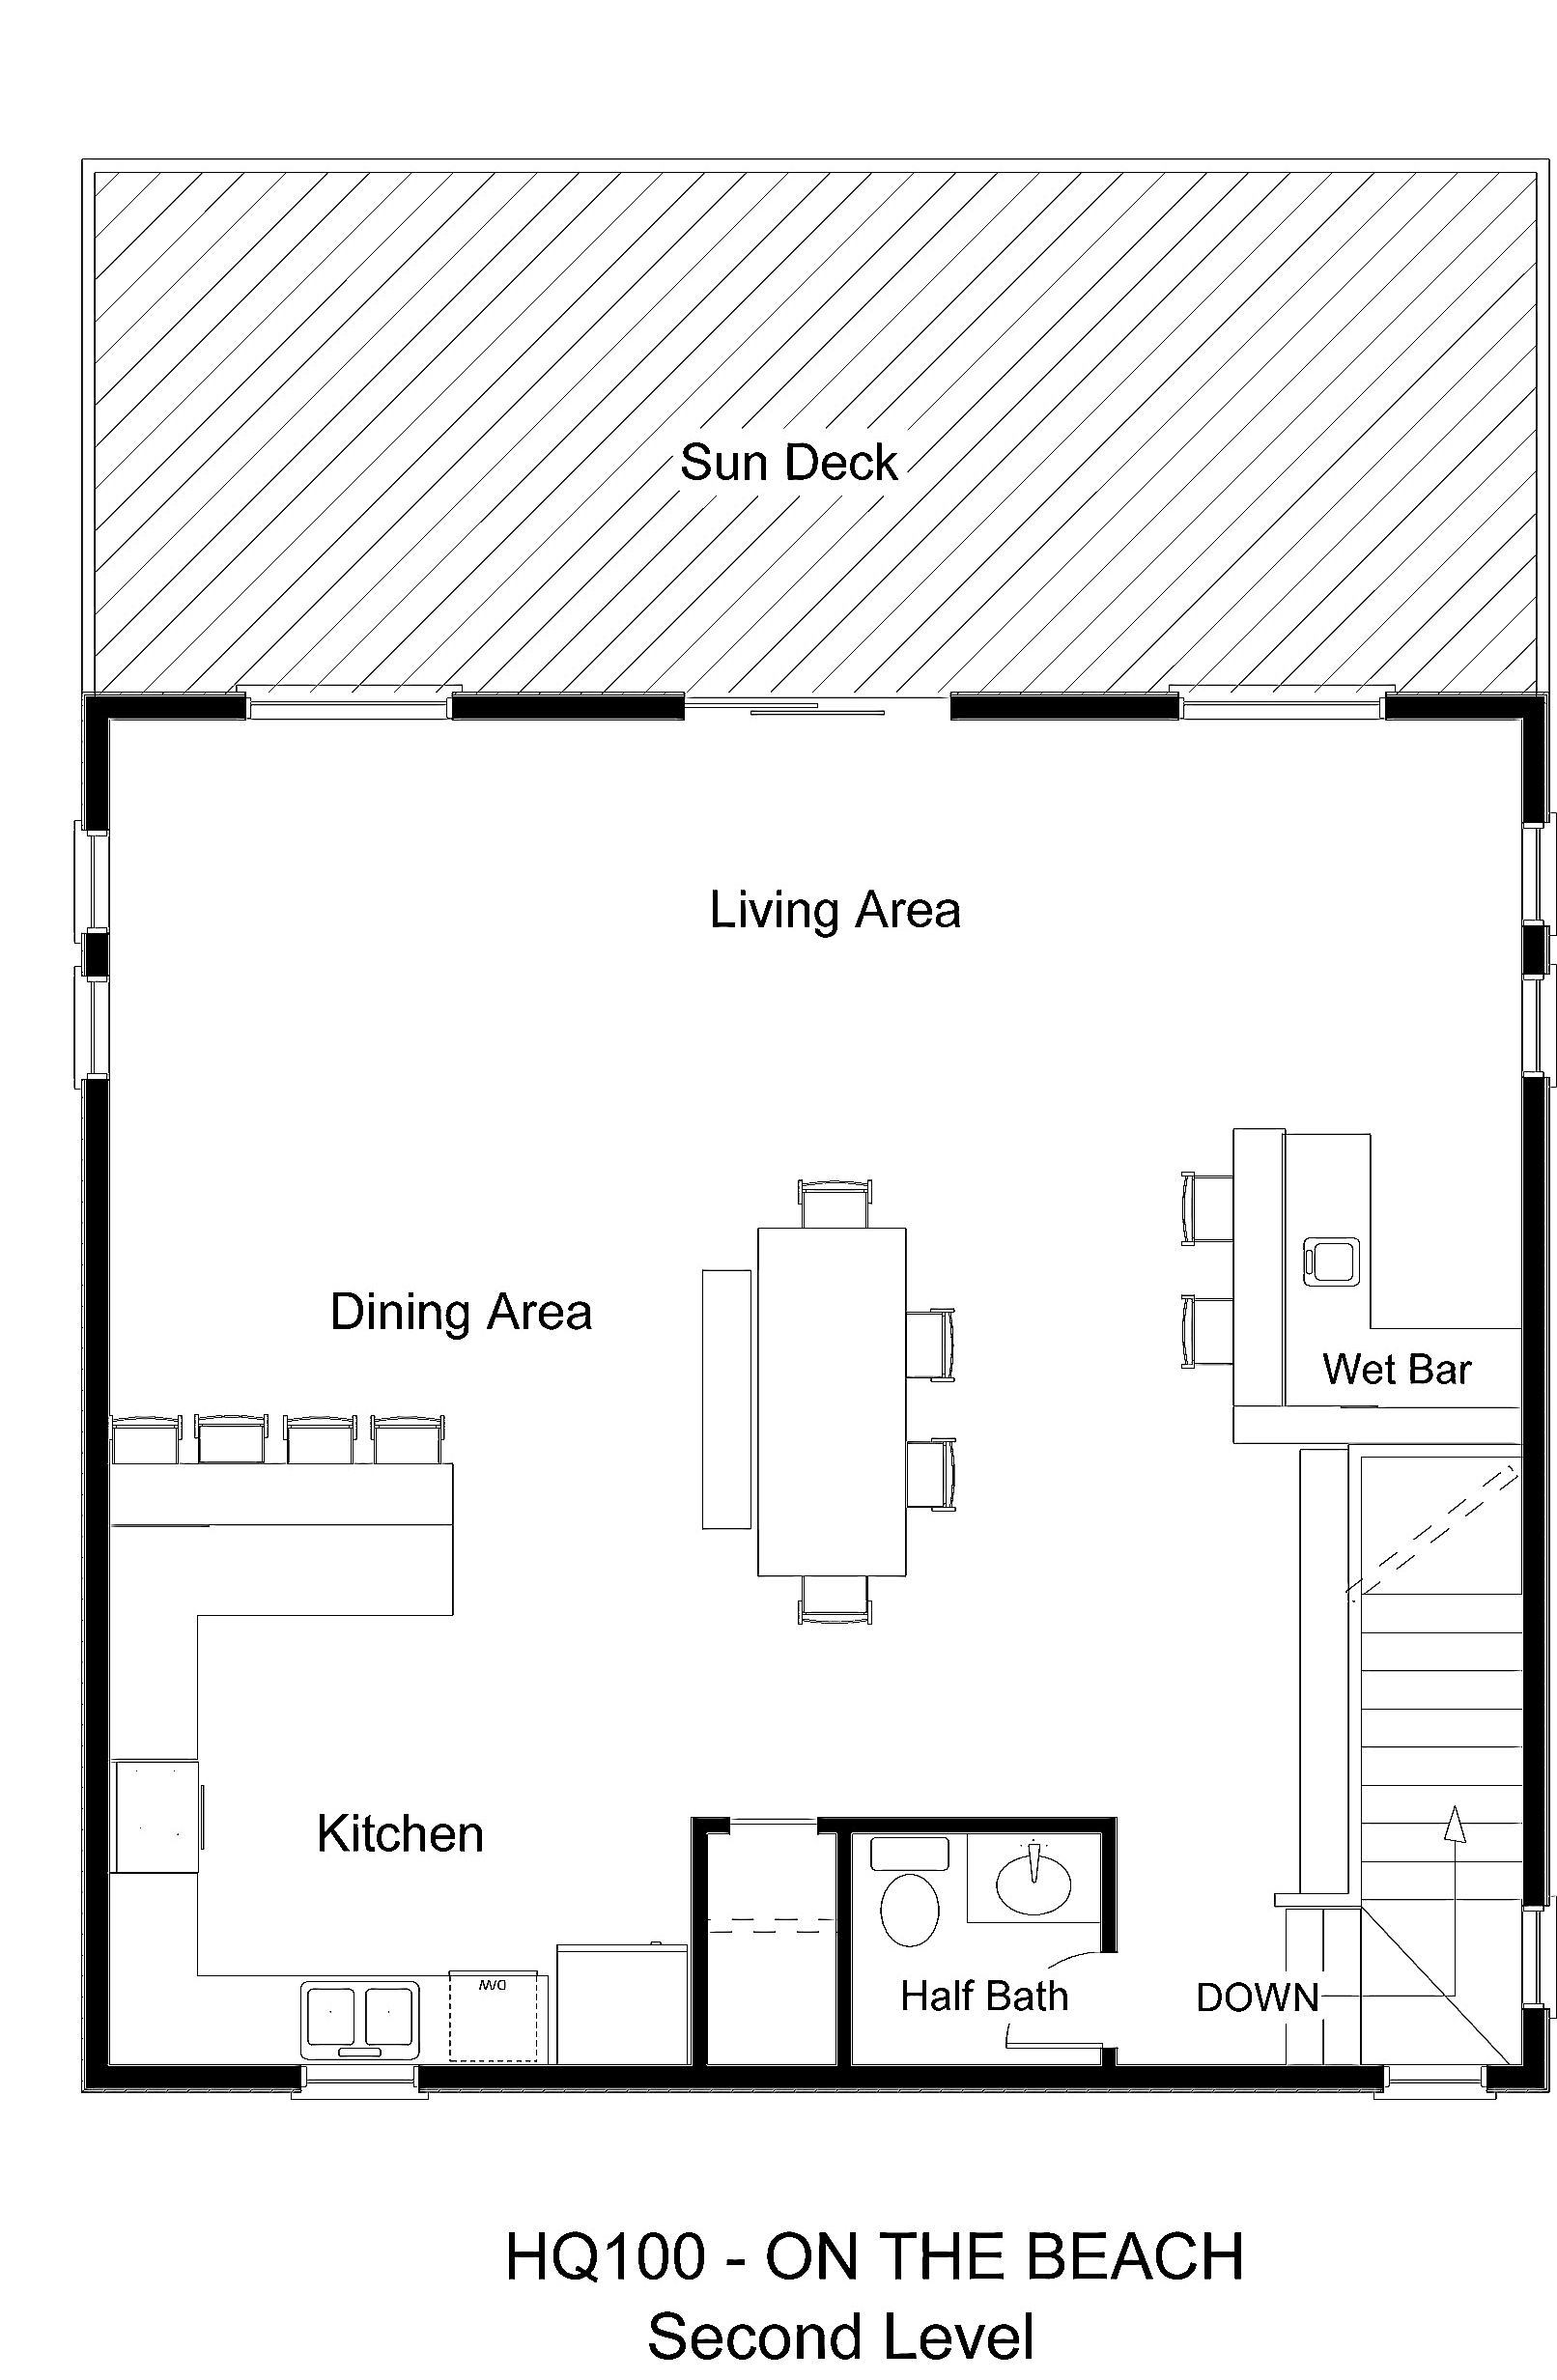 HQ100 On The Beach - Floorplan Level 2